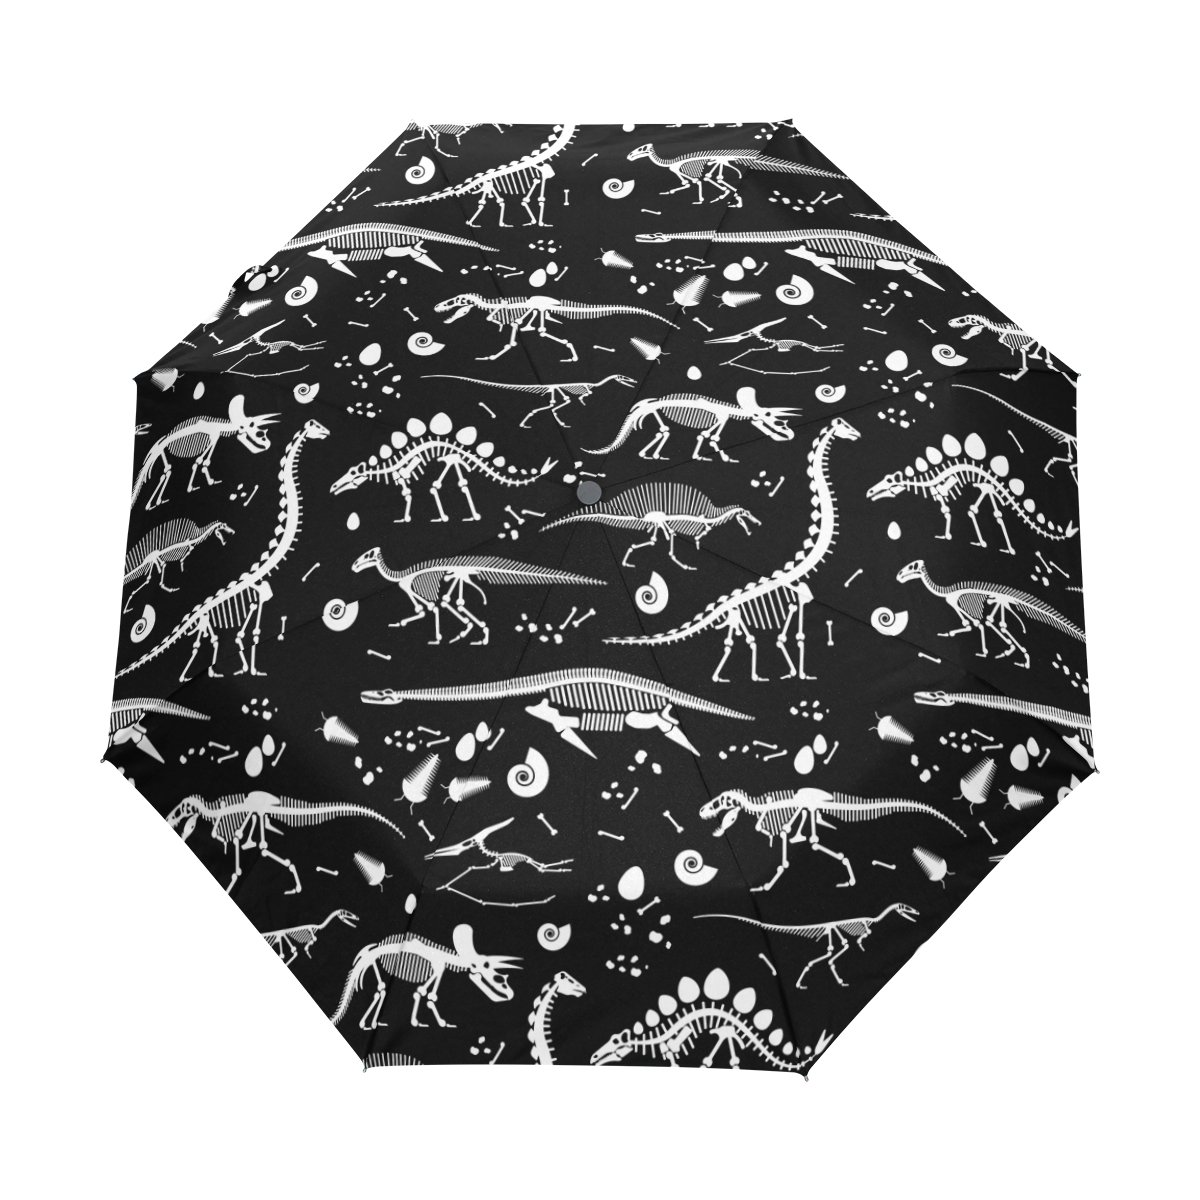 WIHVE Dinosaur Skeleton Umbrella Auto Open Close Windproof Compact